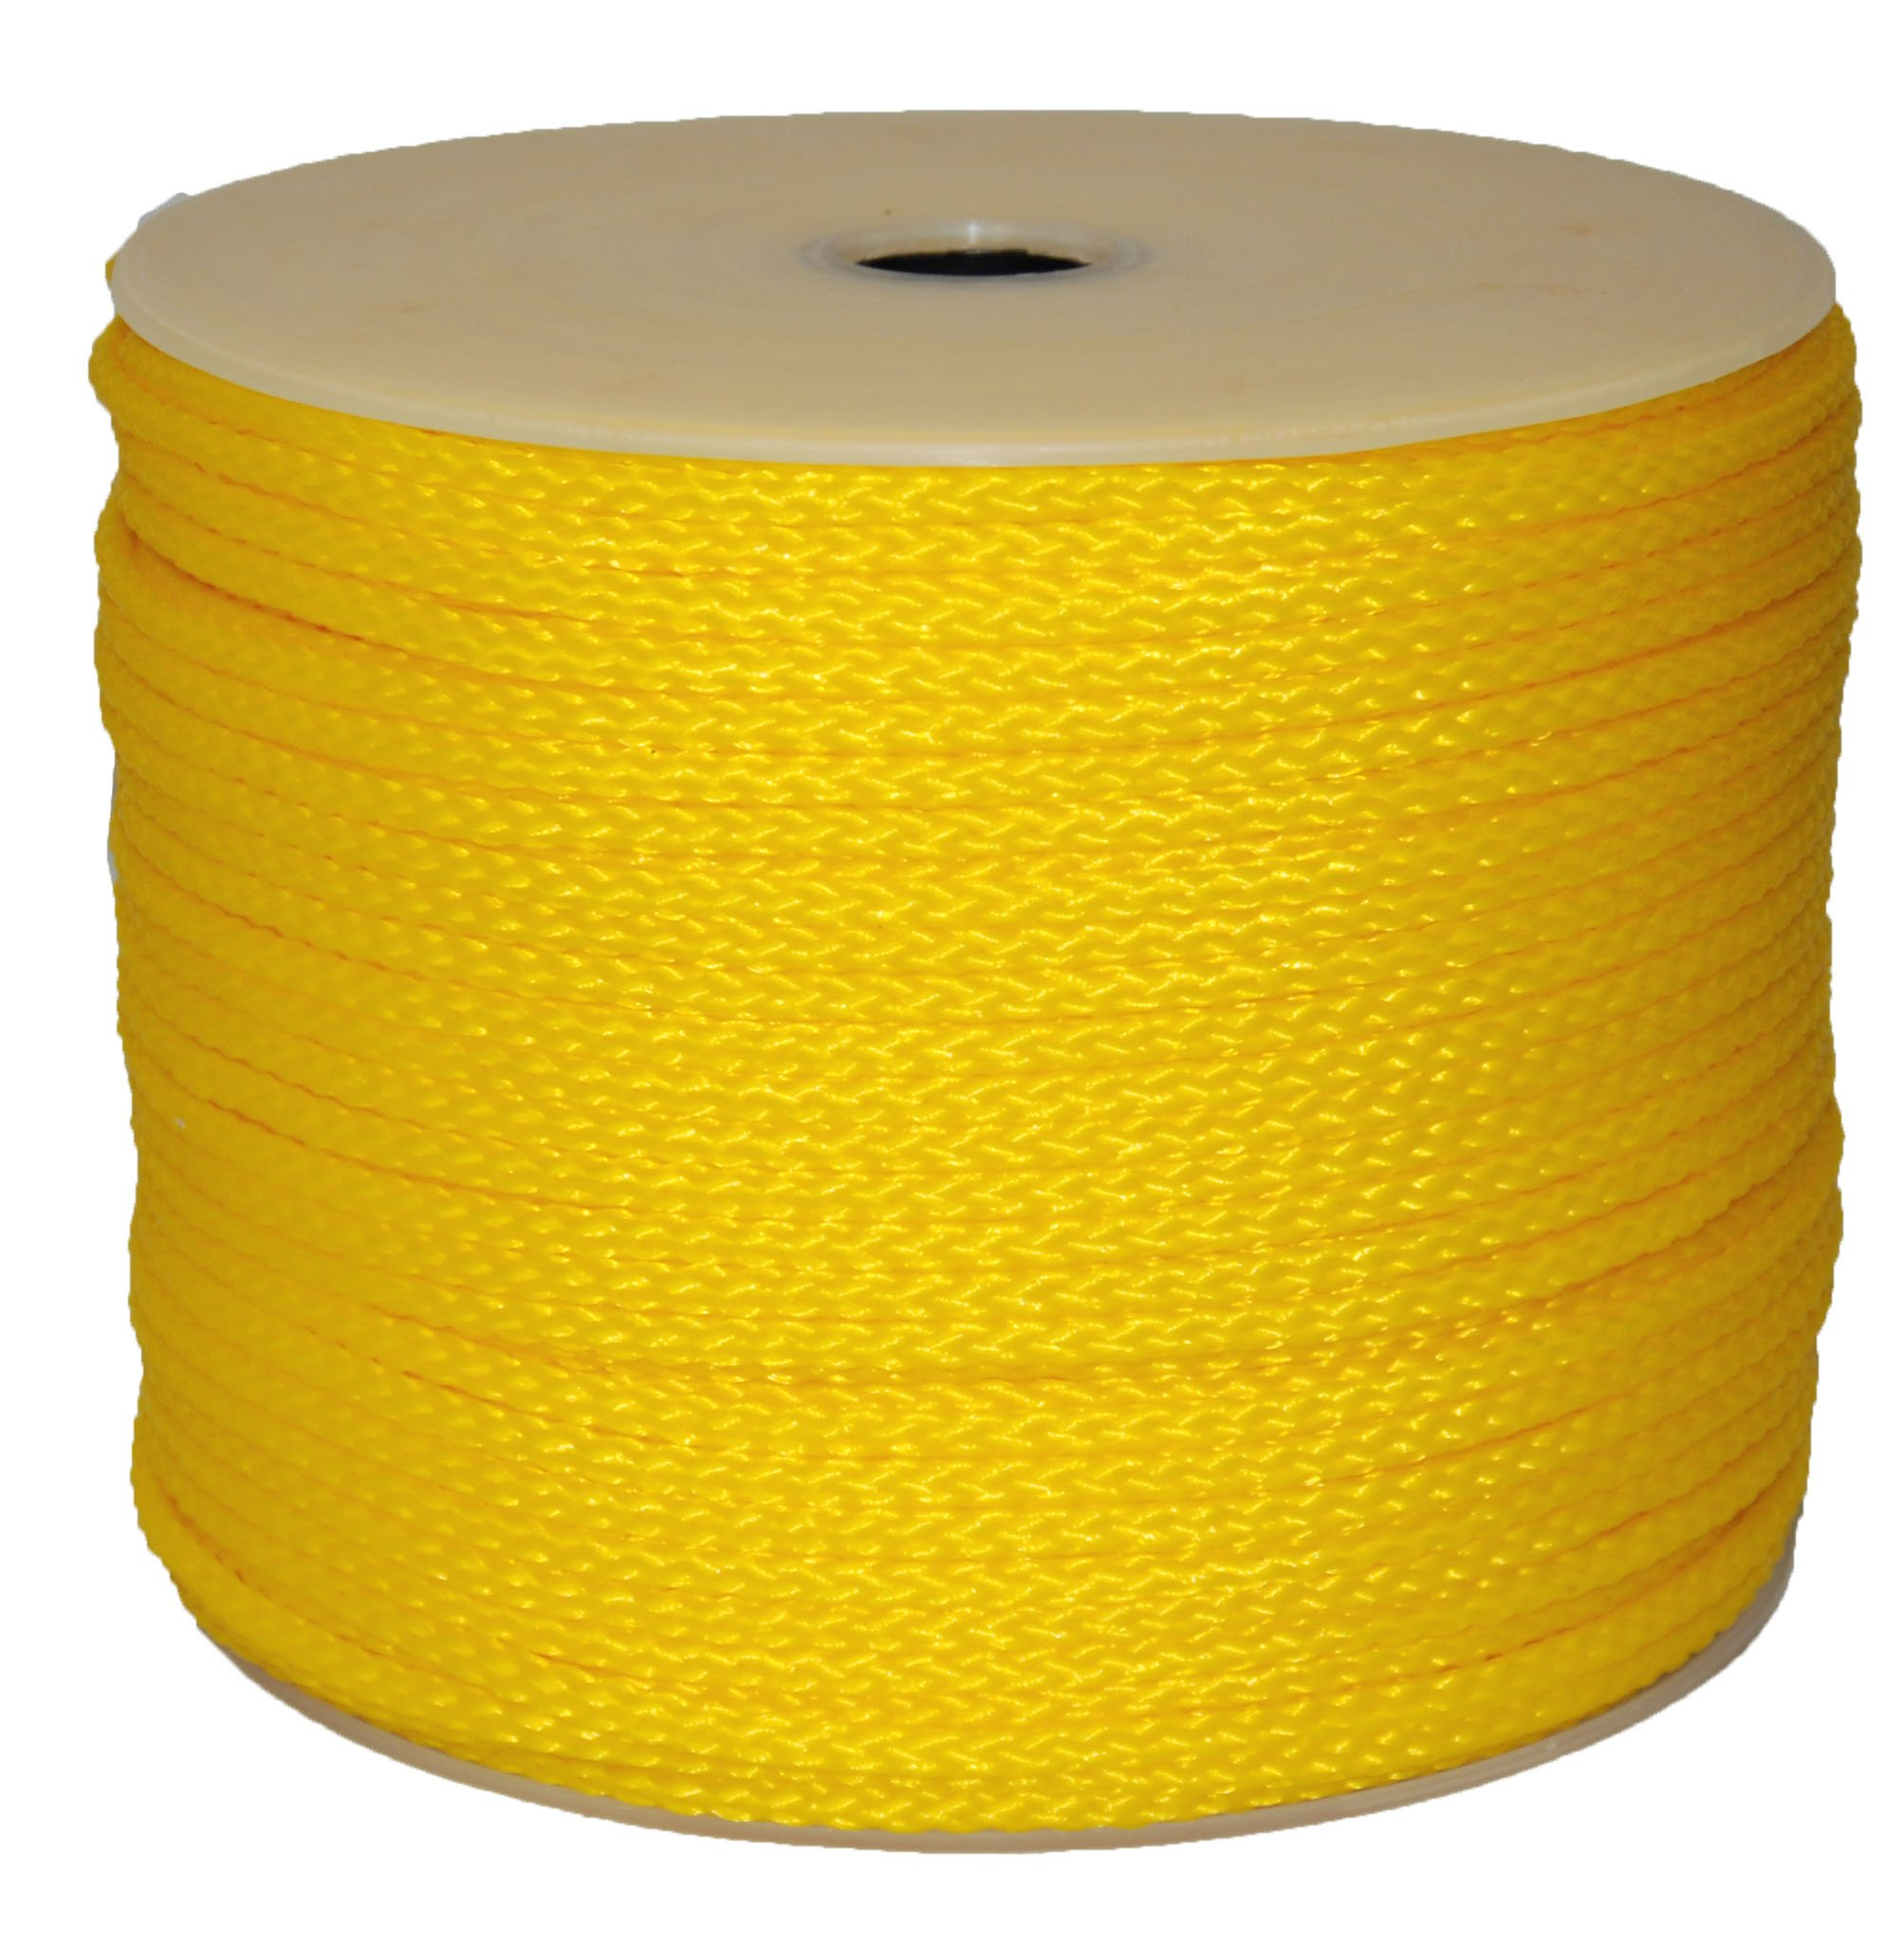 T.W Evans Cordage 27-302 1/4-Inch by 500-Feet Hollow Braid Polypro Rope, Yellow by T.W . Evans Cordage Co.